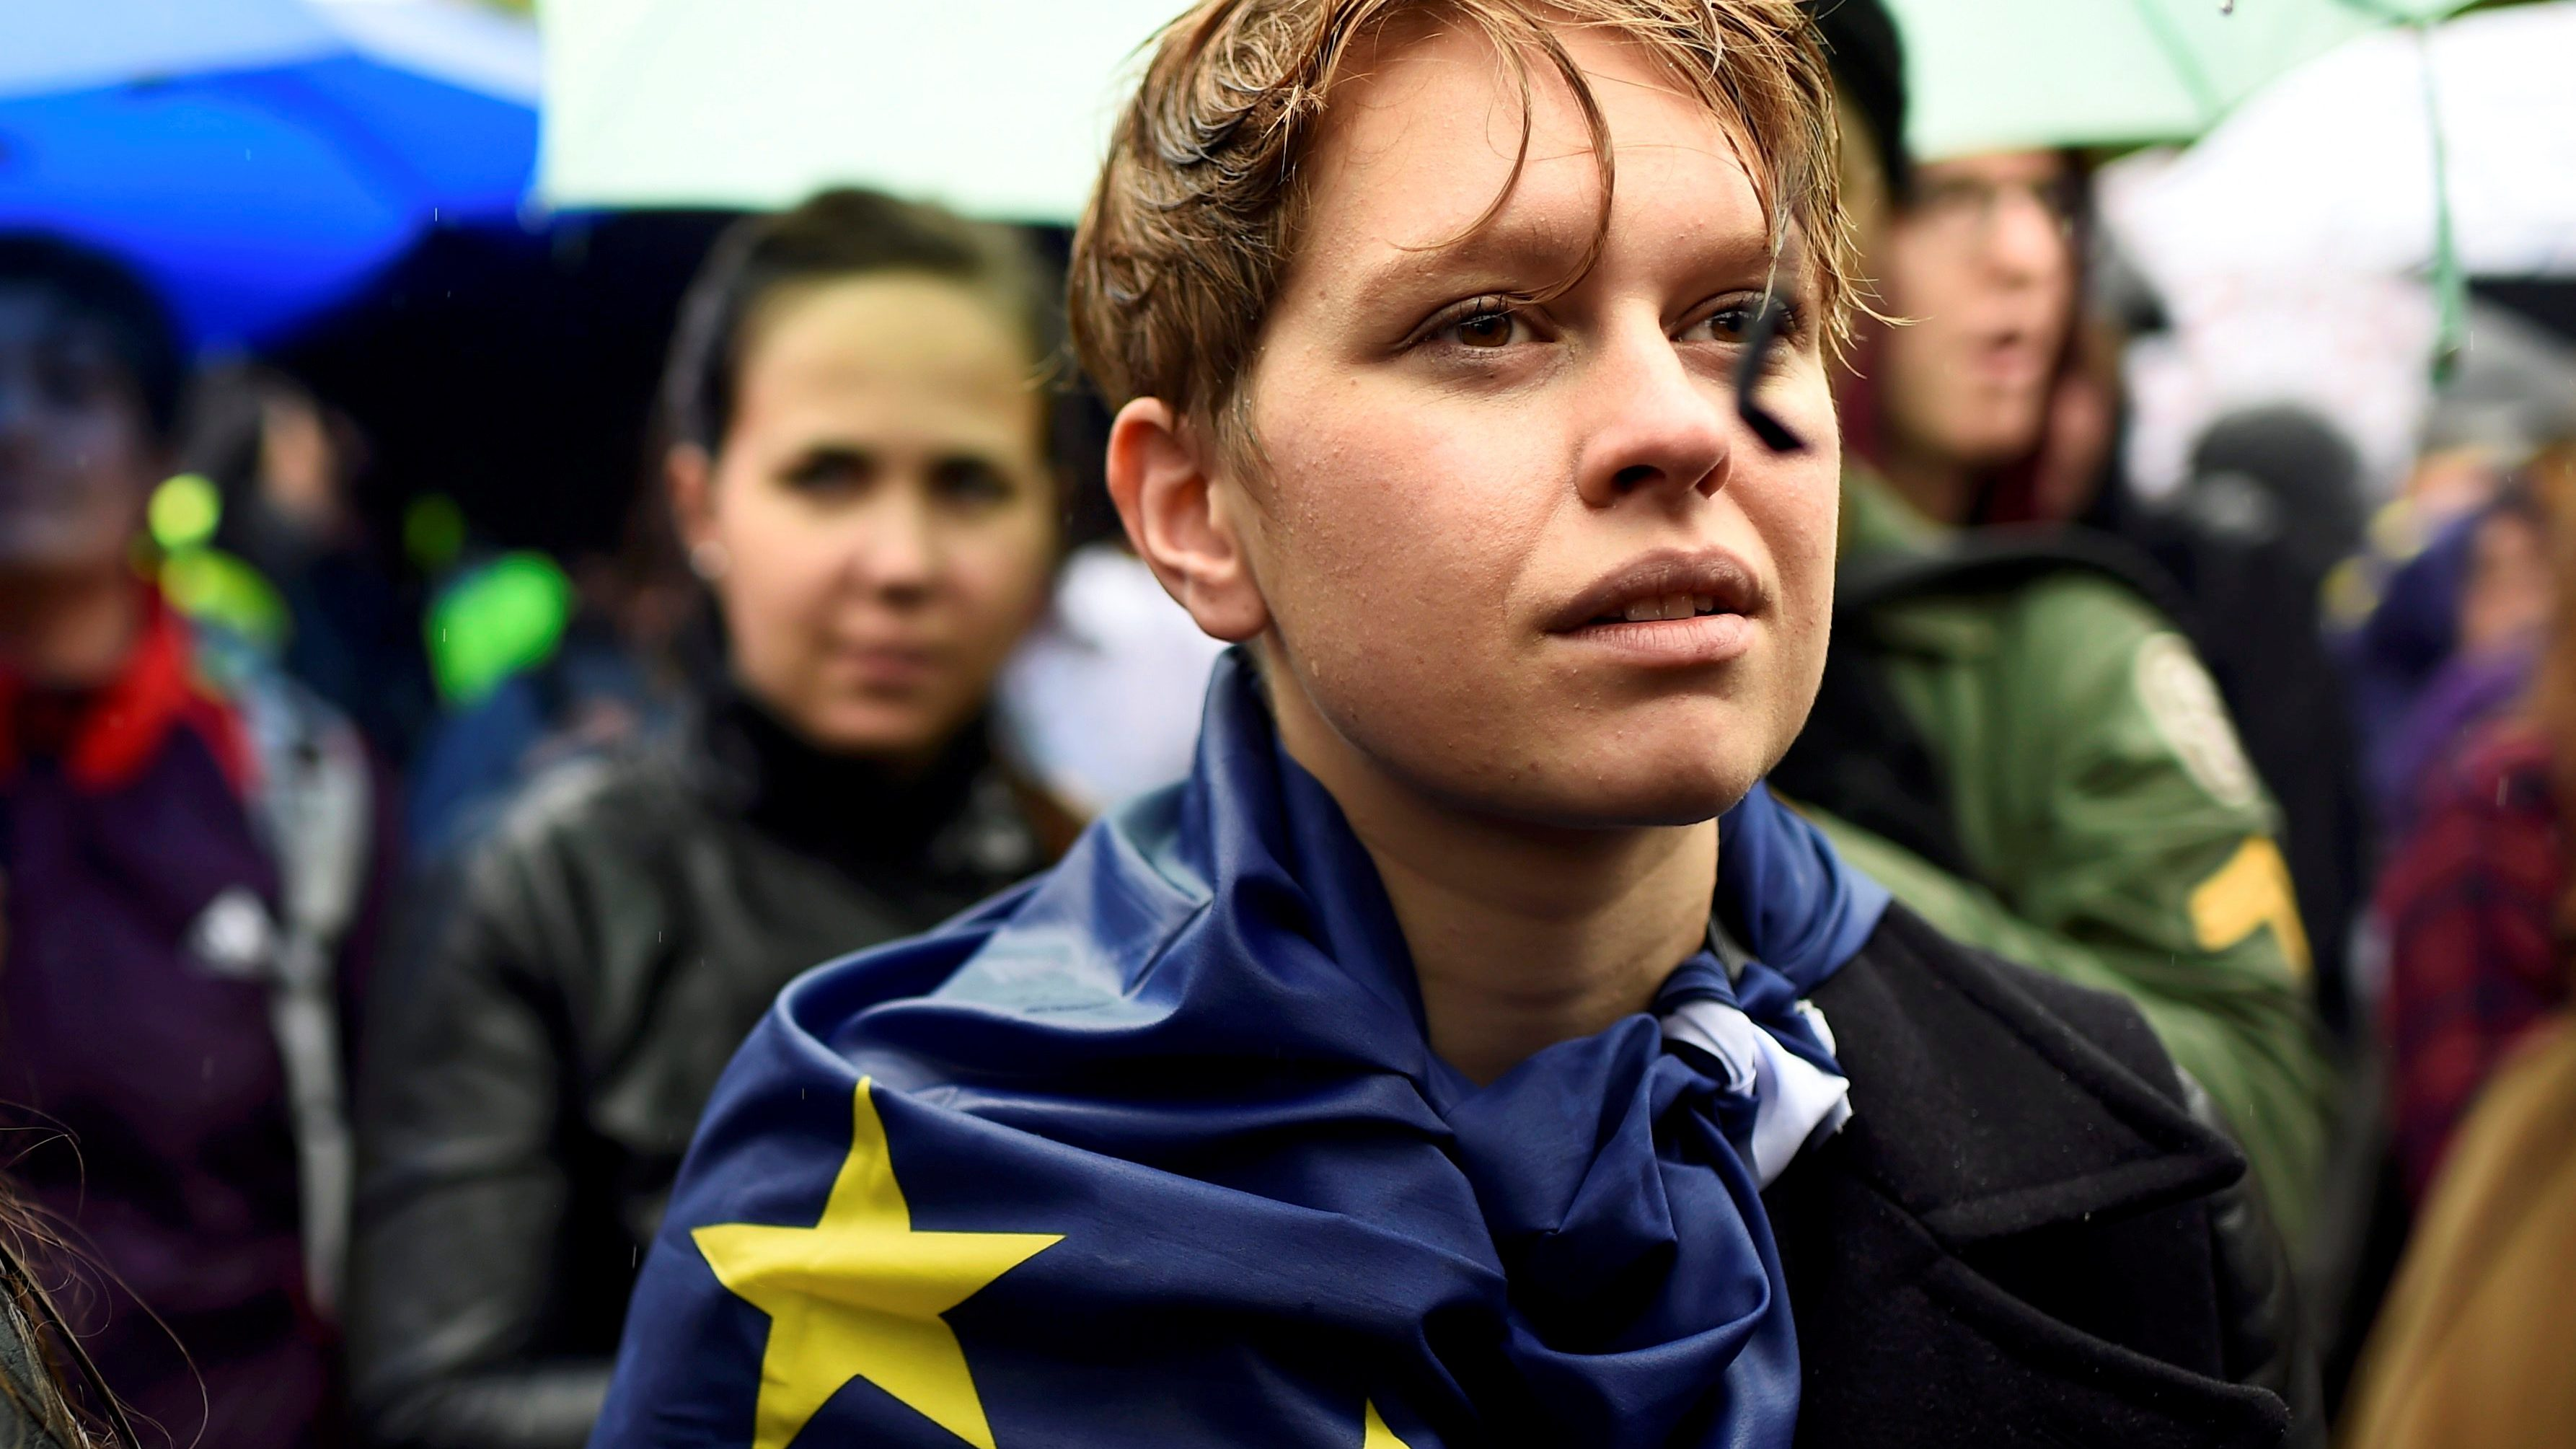 Demonstrators take part in a protest aimed at showing London's solidarity with the European Union